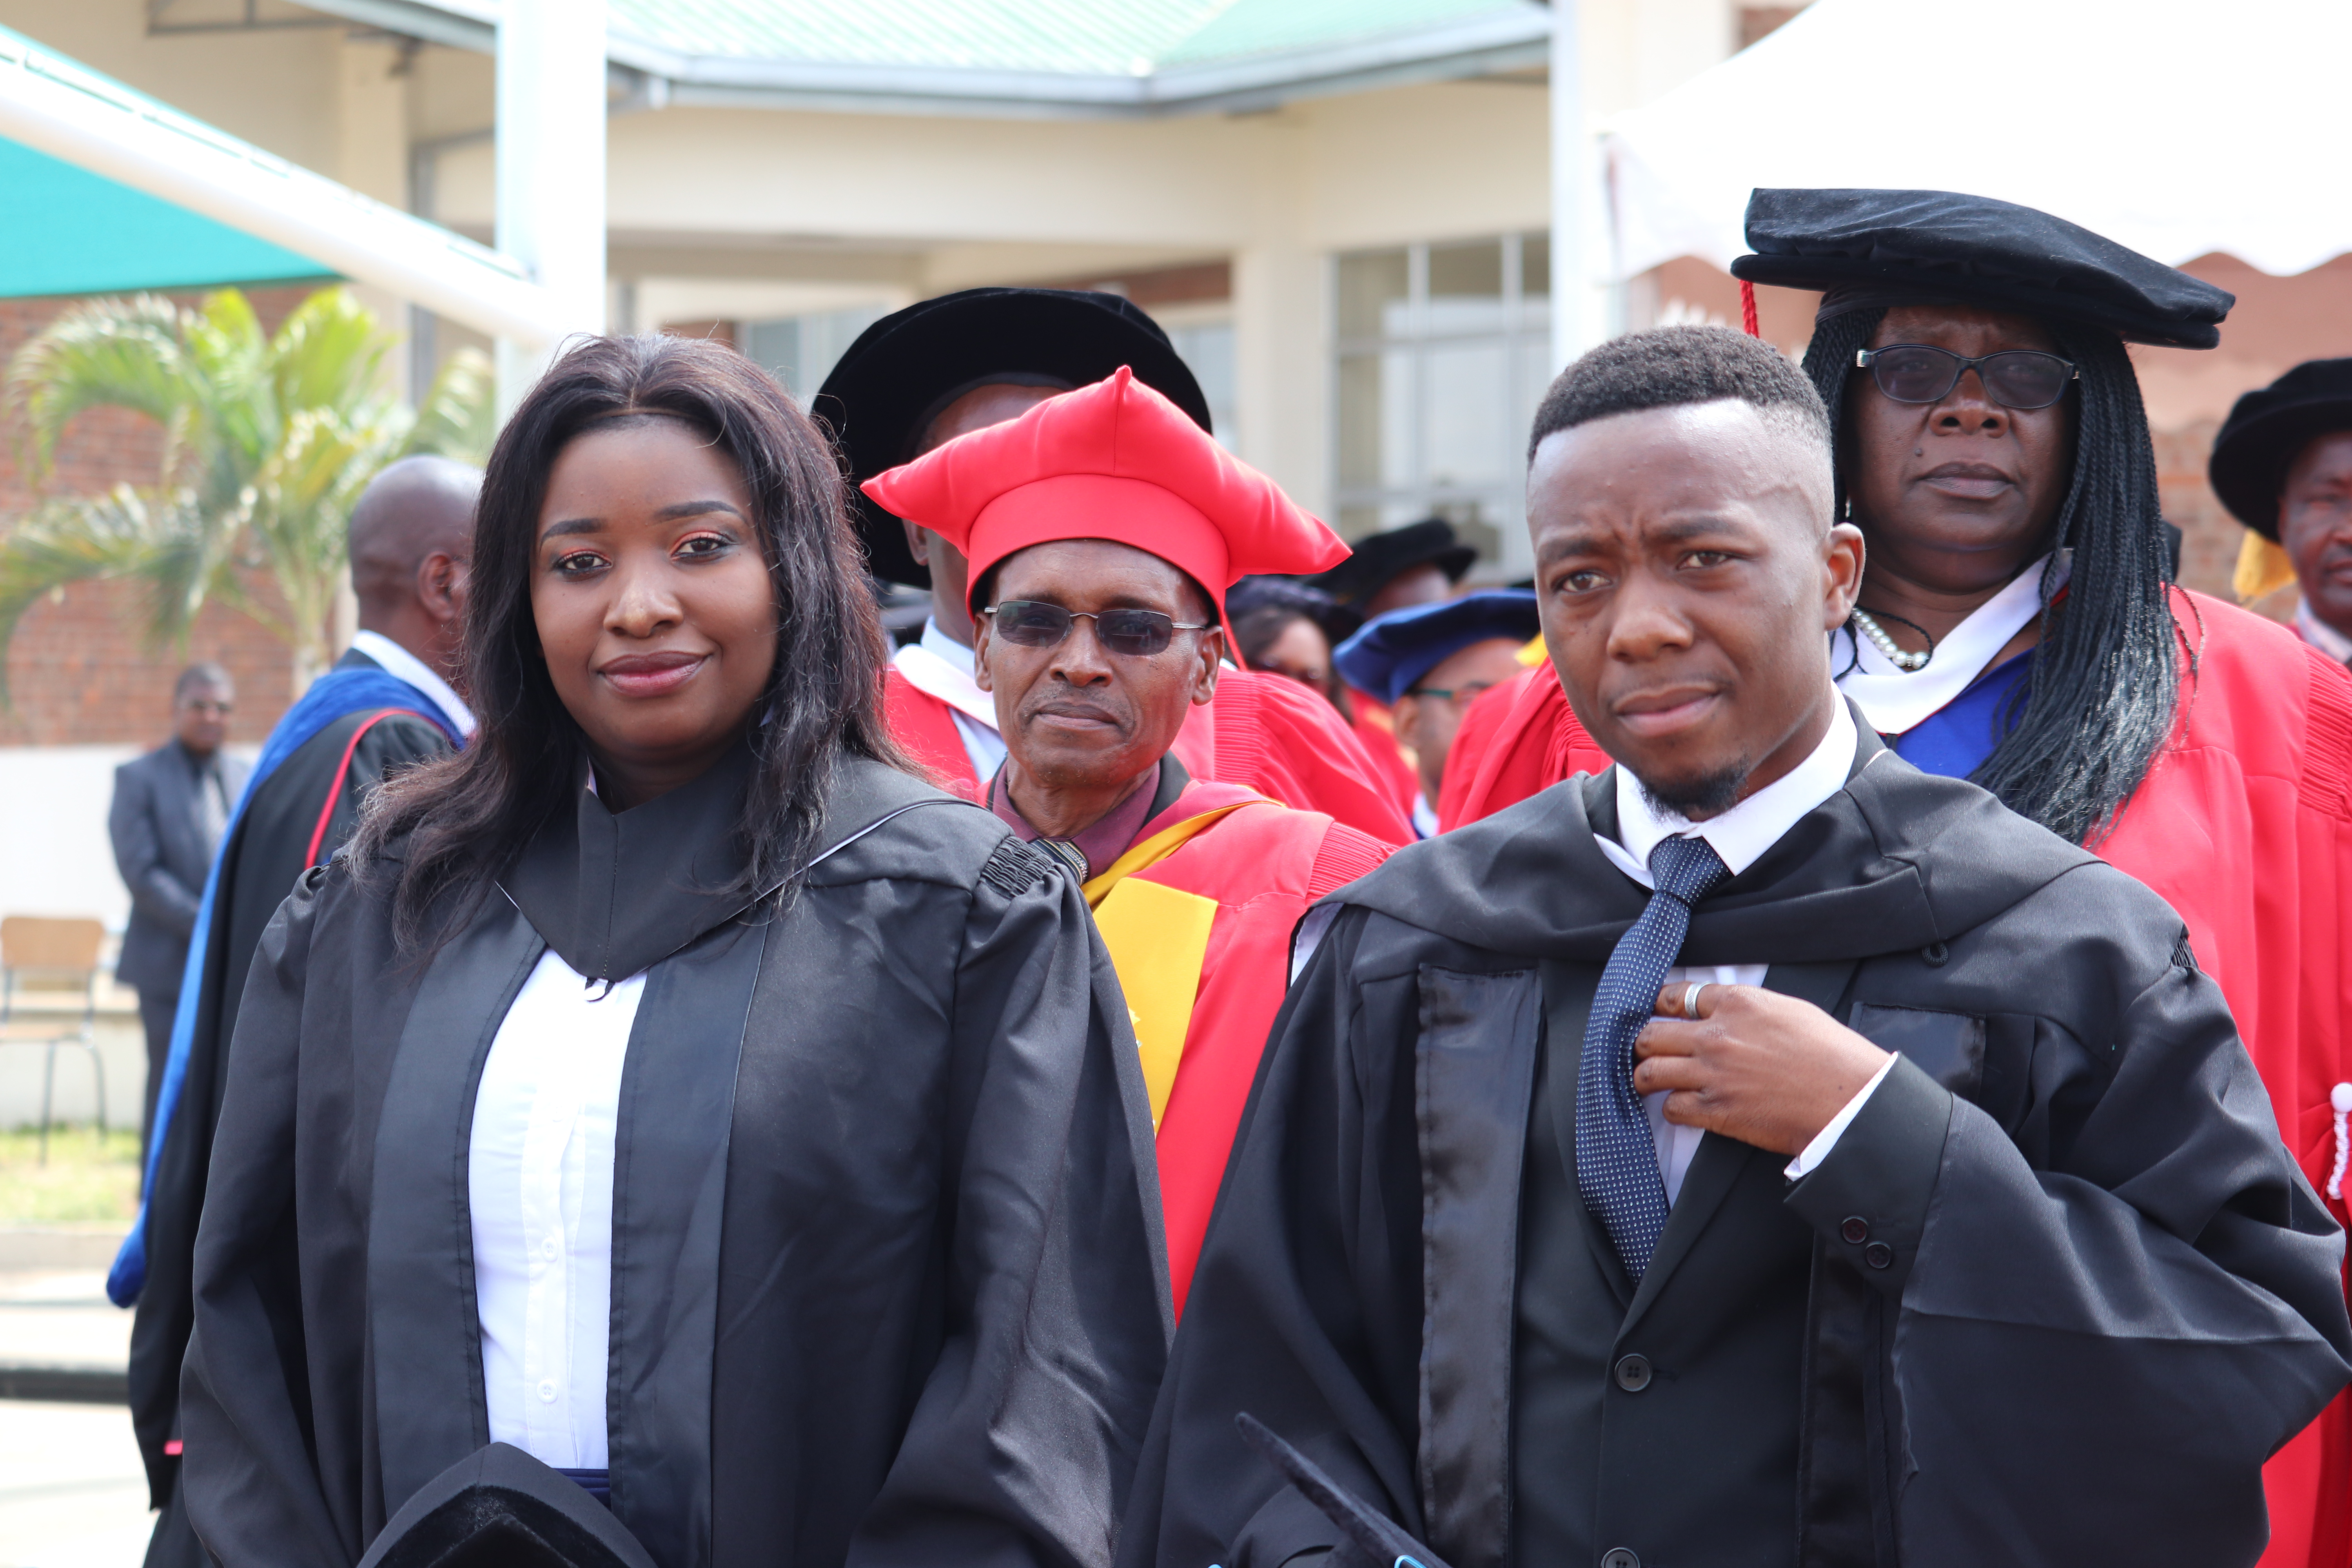 2019 Graduation Ceremony in Pictures